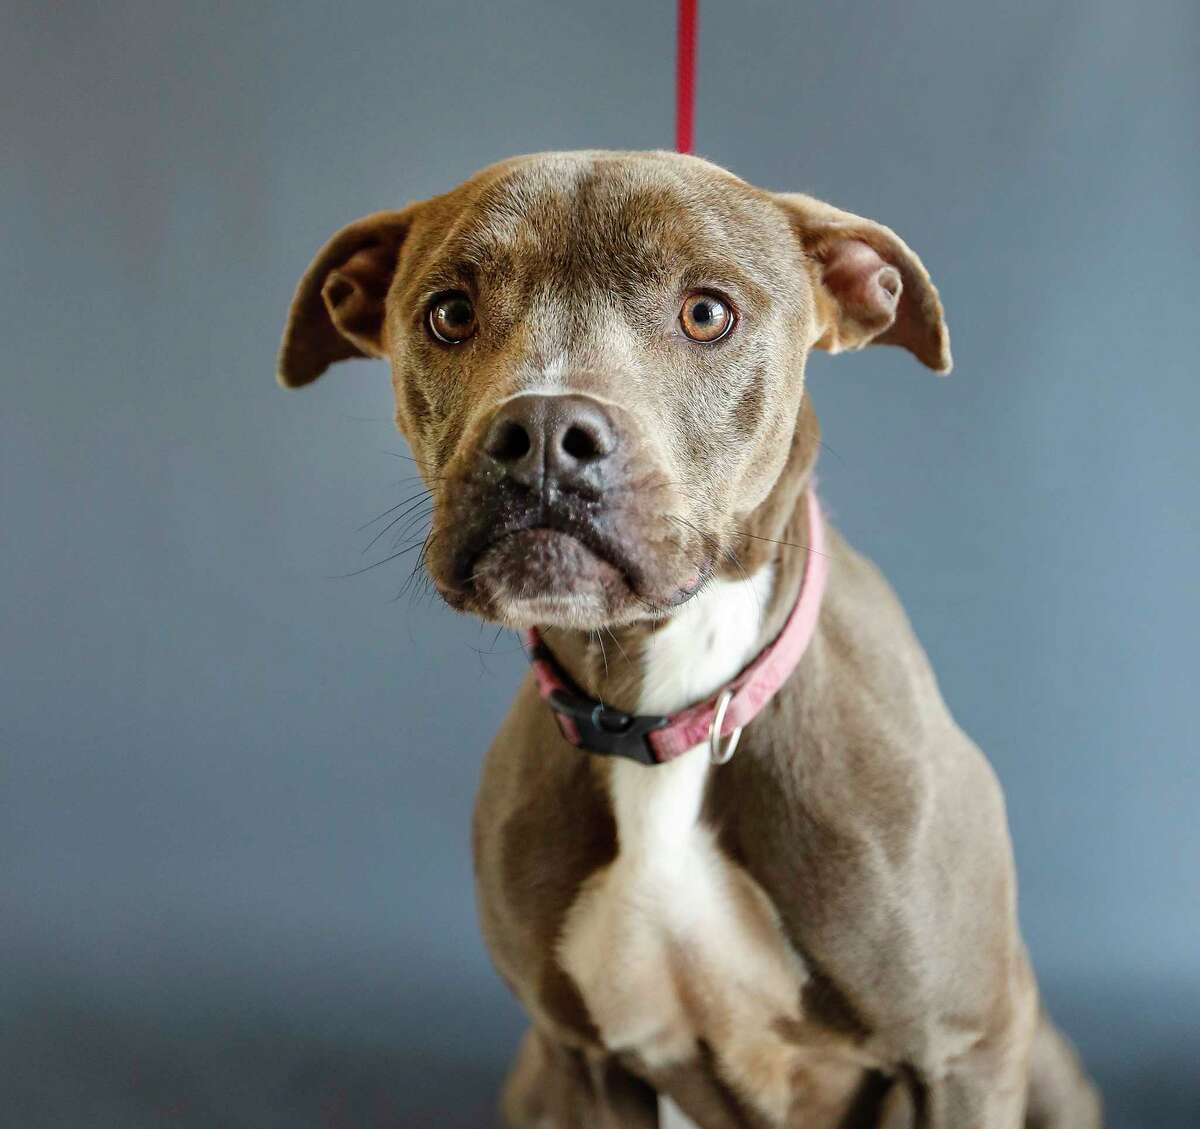 Oaklynn (8891) is an adult, female, Pit Bull mix available for adoption from the Alvin Animal Adoption Center, in Alvin, Wednesday, April 15, 2020. Oaklynn was brought into the shelter as a stray over 456 days ago. She is a happy go-lucky, loves people and would be best in a home without cats or children.